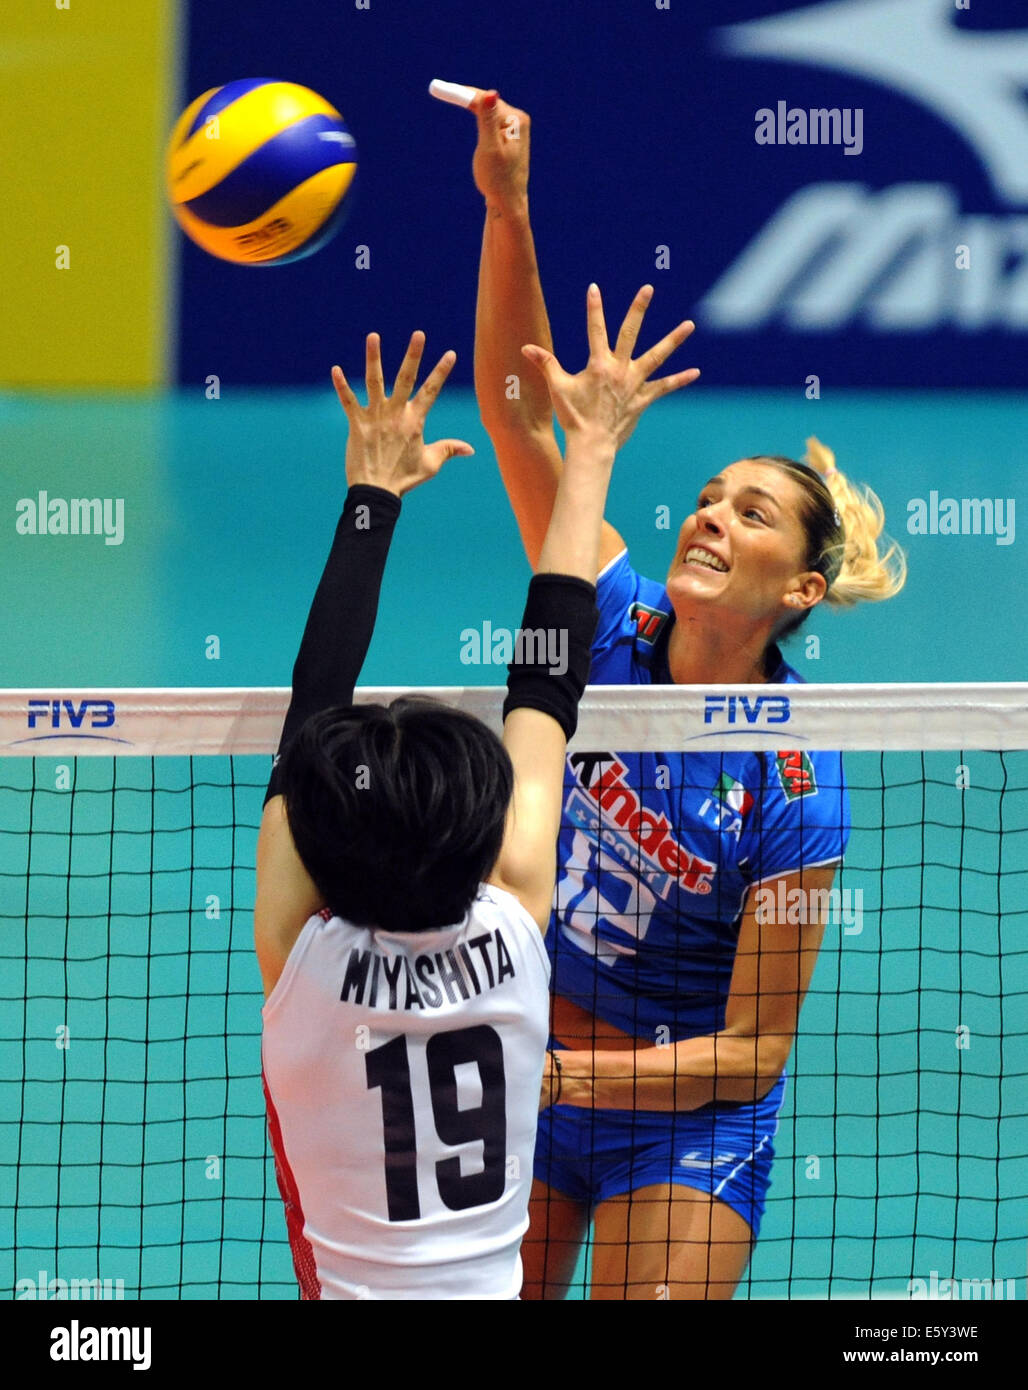 Volleyball player francesca piccinini can